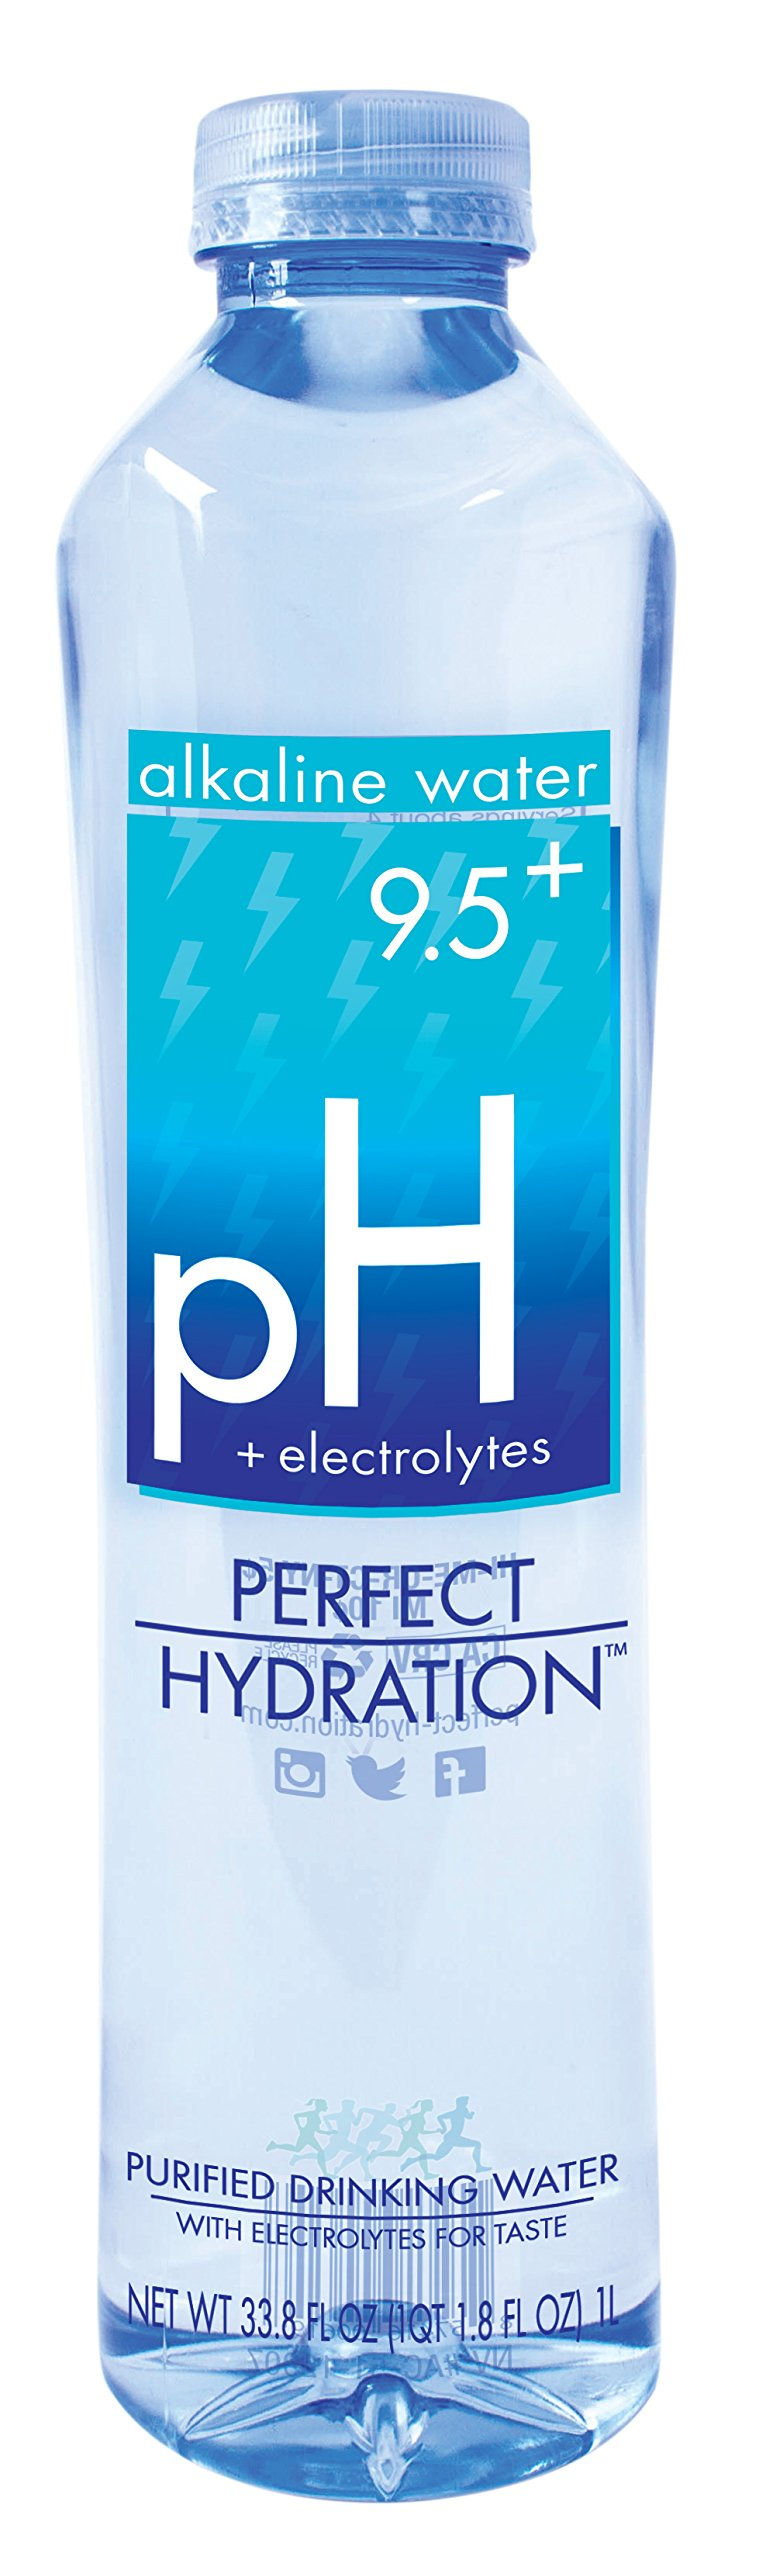 Perfect Hydration Alkaline Electrolyte Enhanced Water, 9.5+ pH | Ultra Purified Ionically Charged Minerals Added Drinking Water | No Added Sodium, Chlorine, Fluorine, 1 Liter/33.8 Ounce (12 Pack)